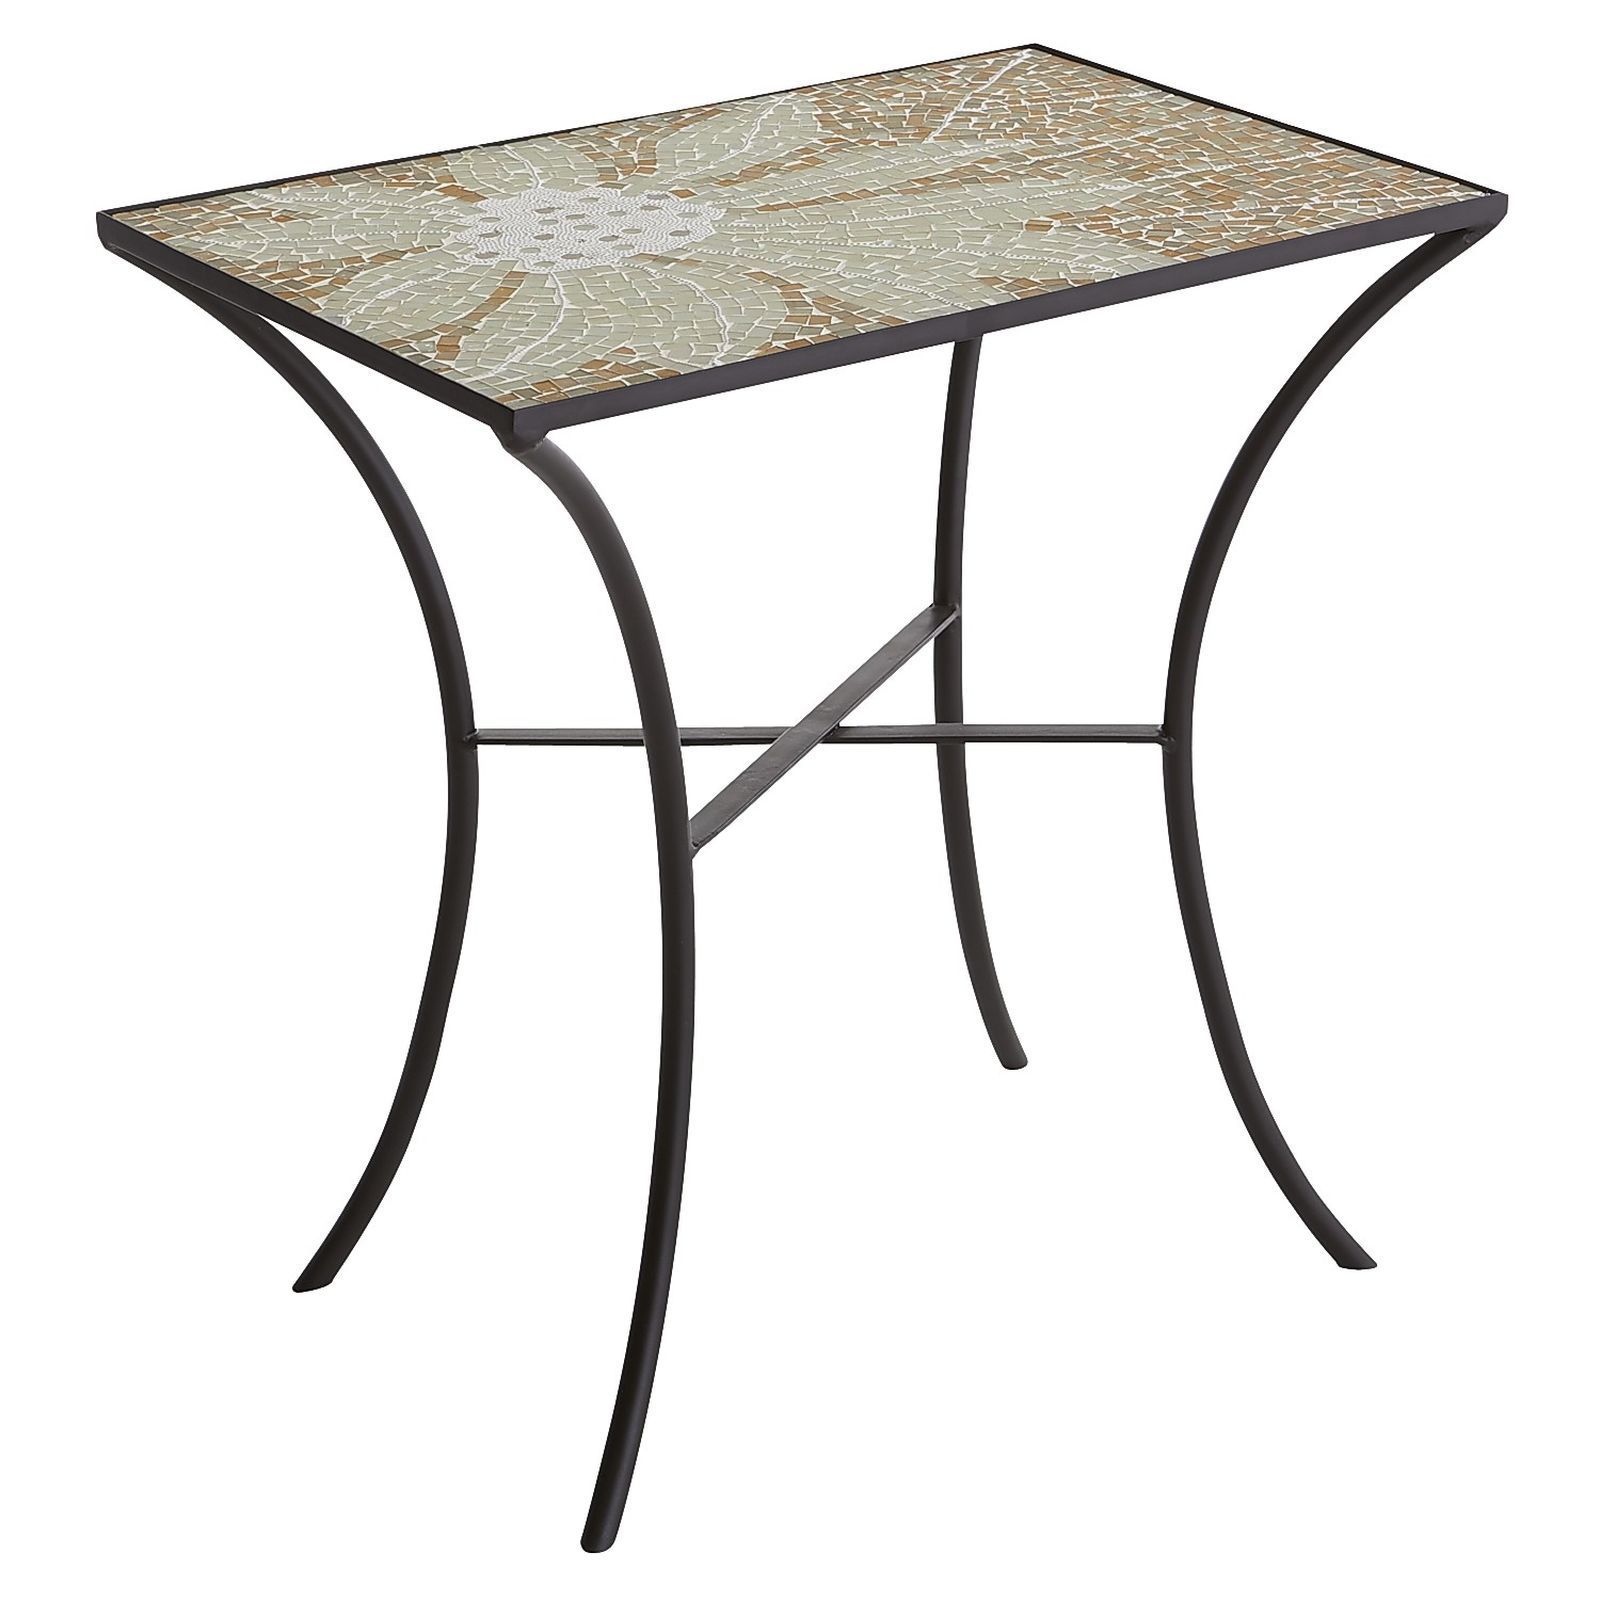 camellia accent table that speaks both form and function wrought iron tables glass top hand inlaid tiles glittering flower full bloom black modern side transition pieces for